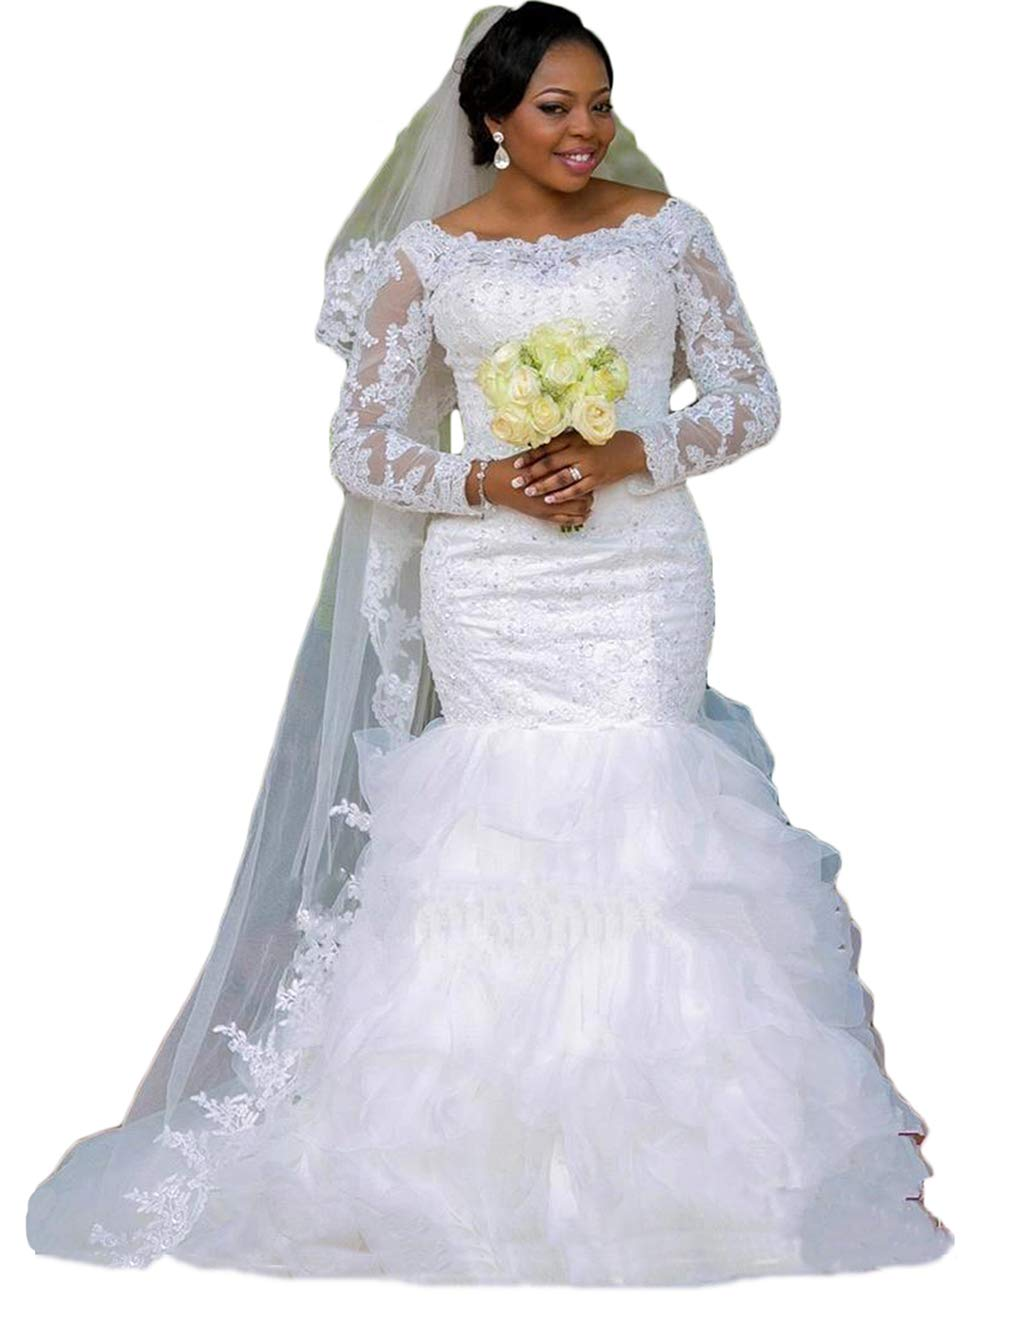 Womens Mermaid Wedding Dresses Ball Gown Long Sleeve Lace Beaded Wedding Dresses For Bride 2019 Plus Size White